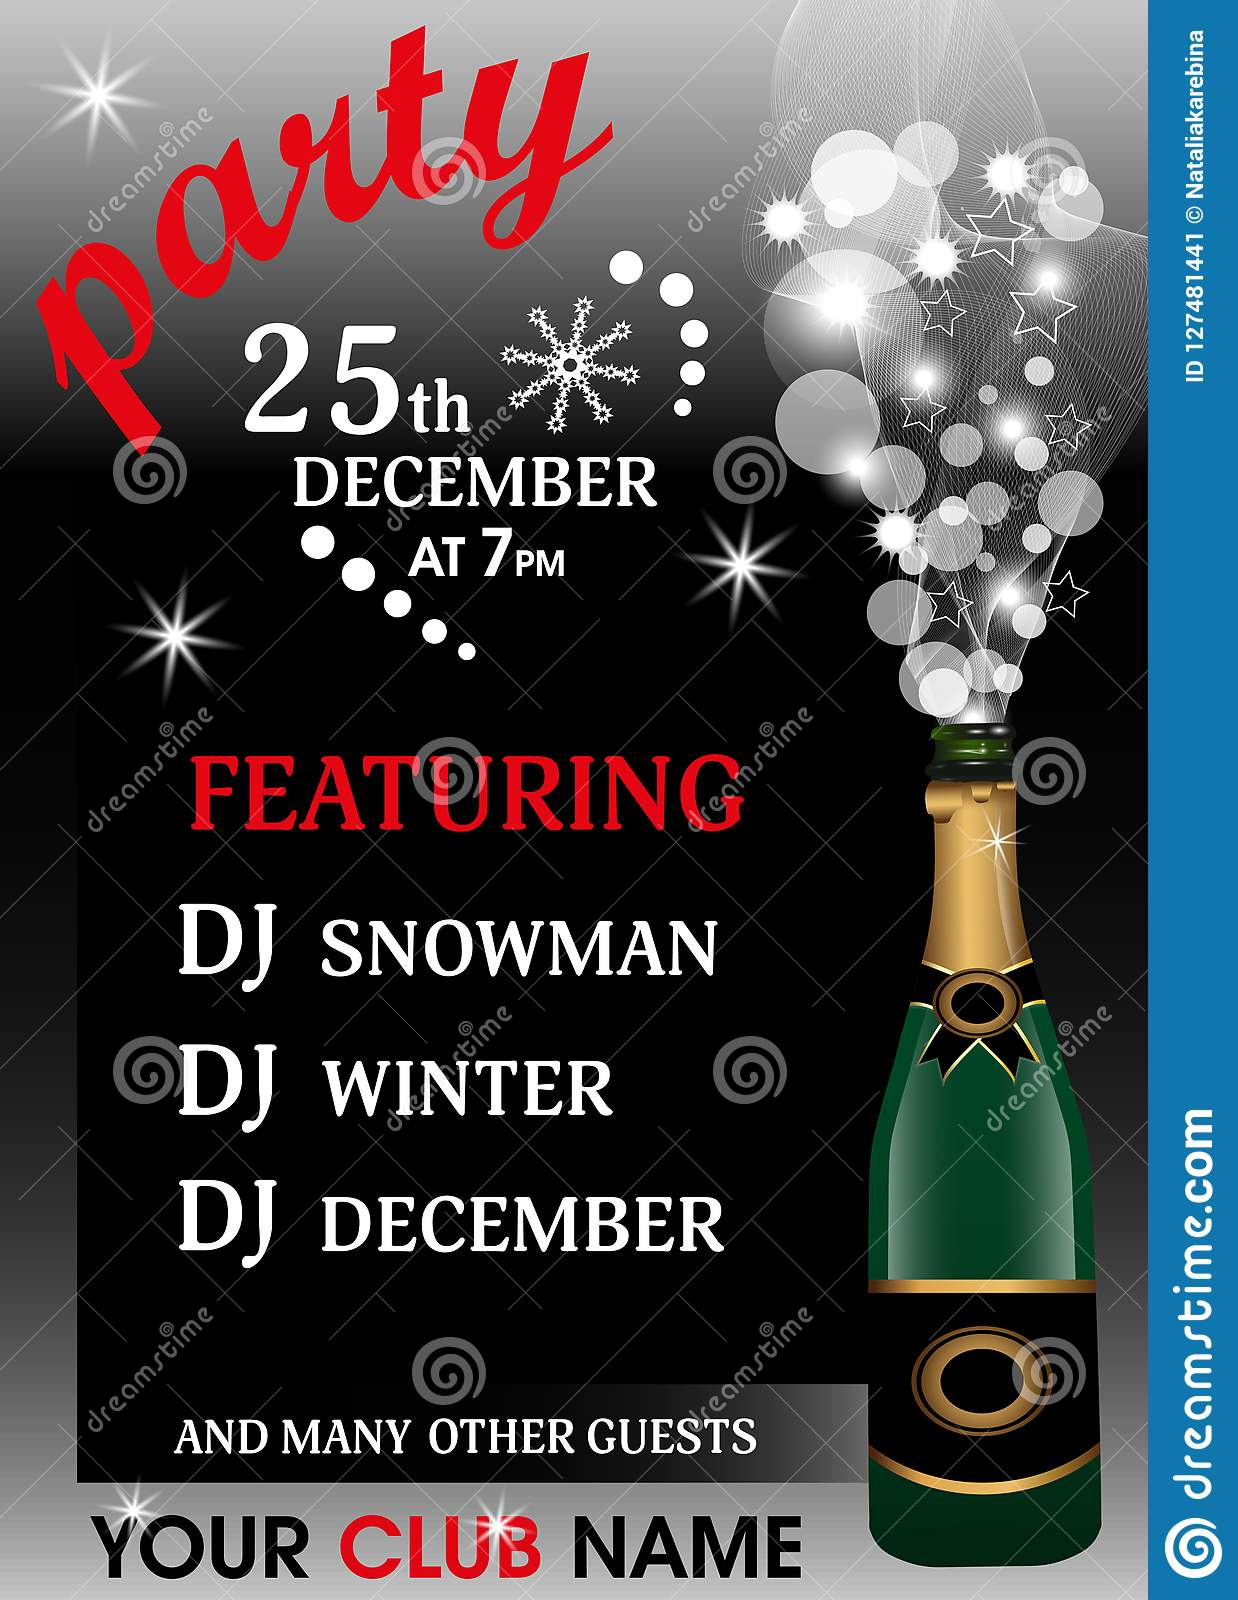 christmas party invitation template with champagne bottle new year background vector